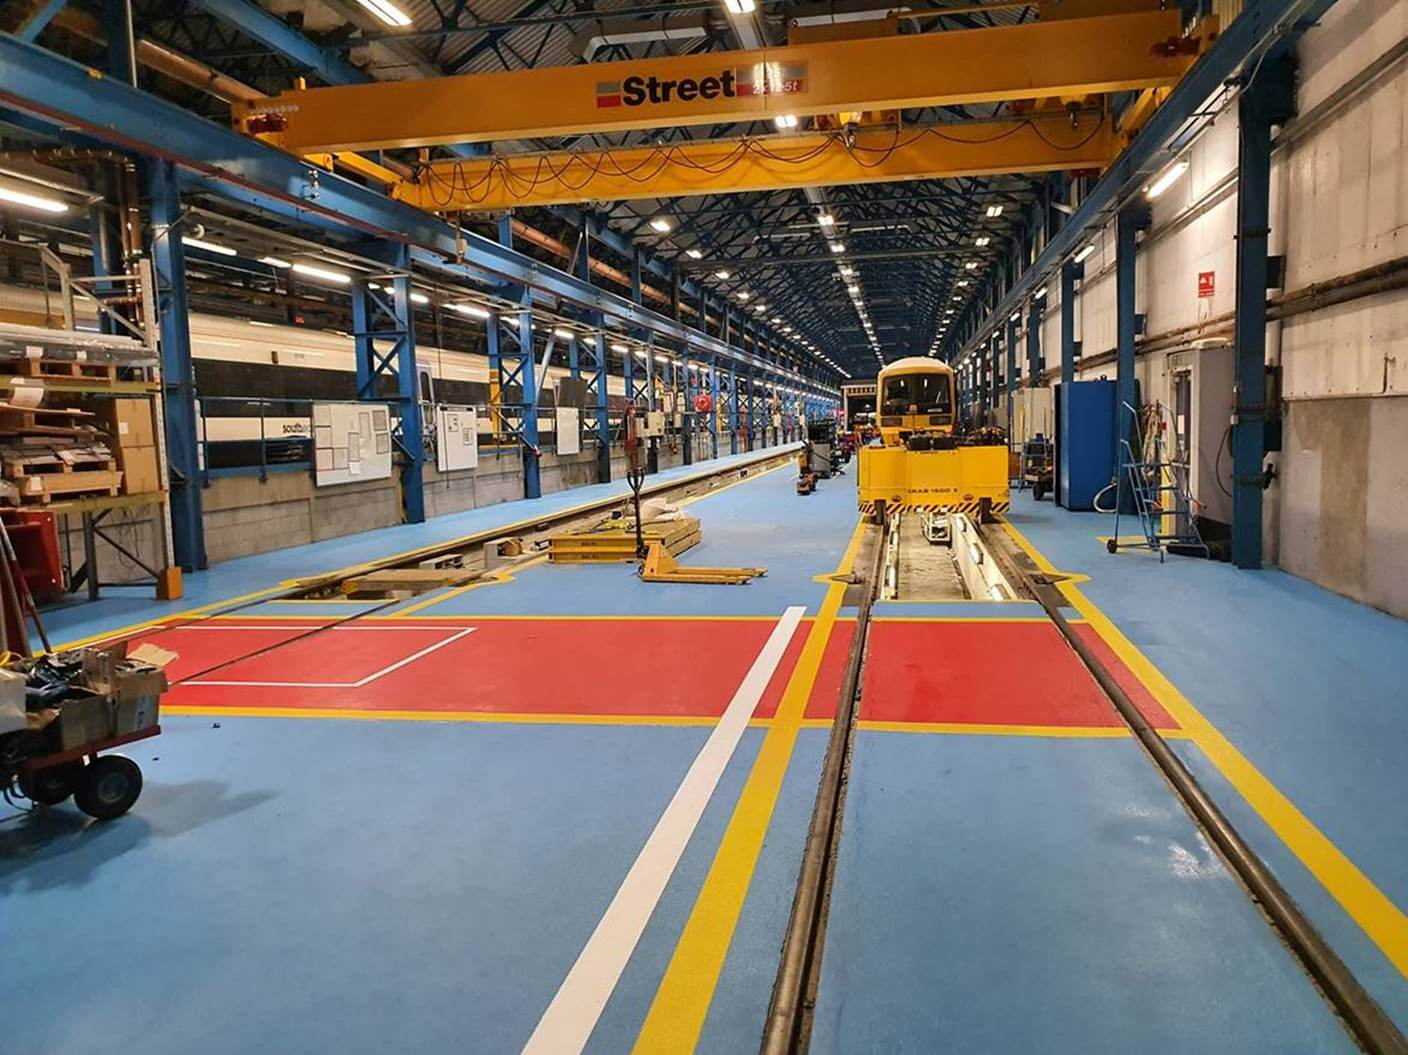 Slade Train Deport Flooring Maintenance